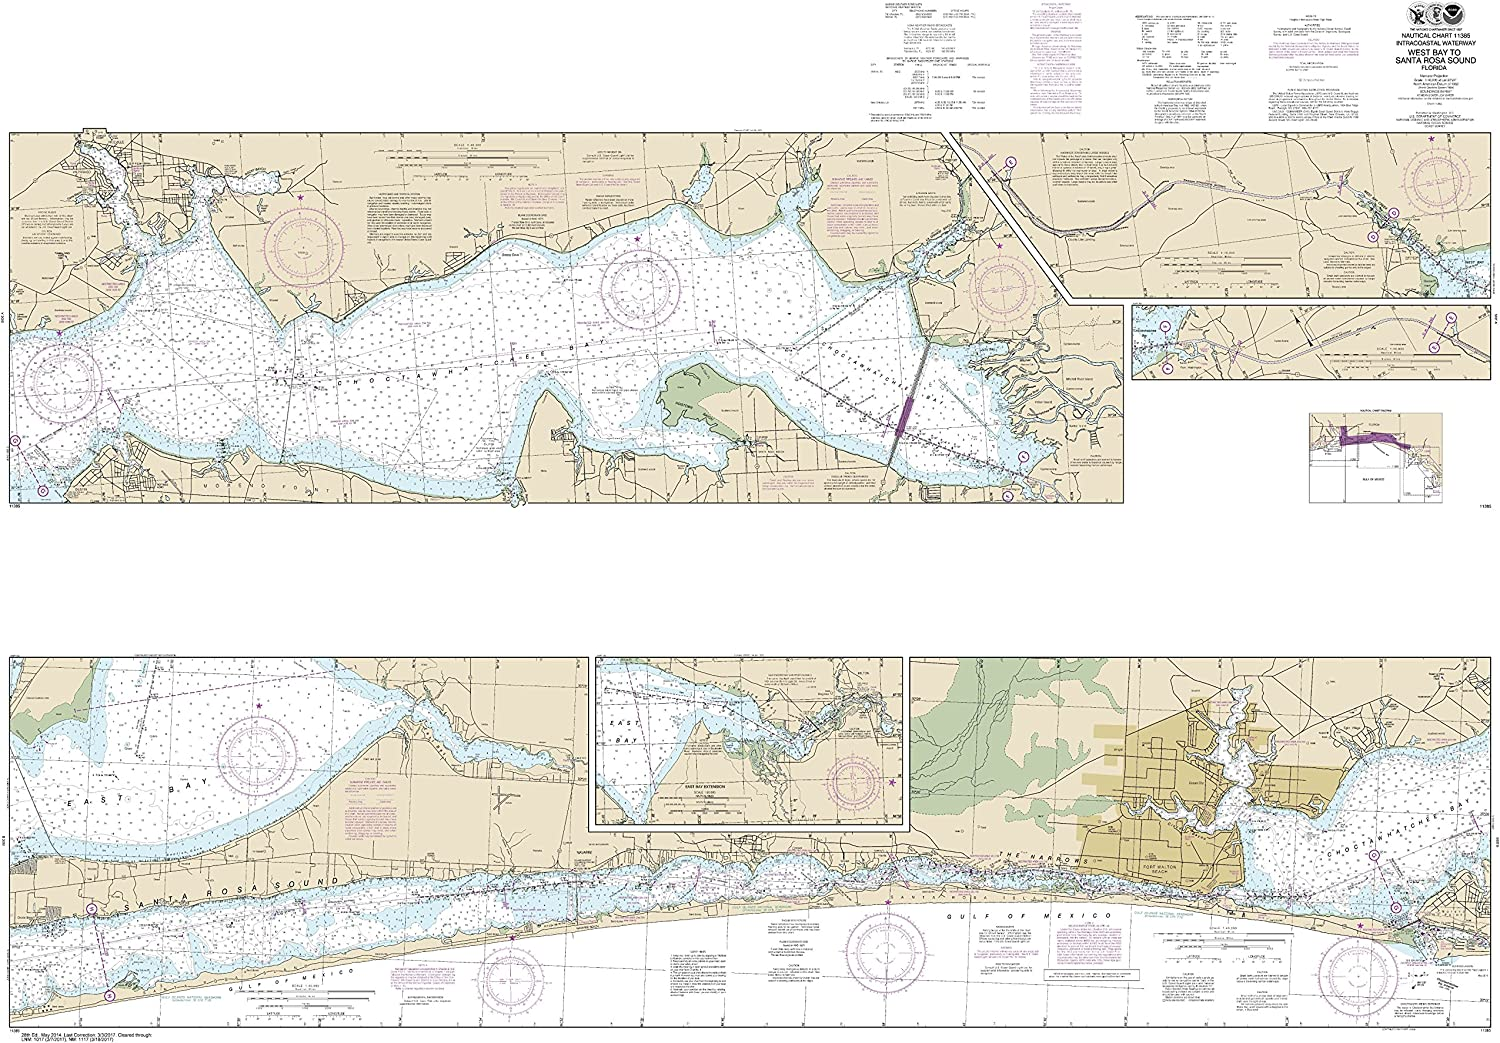 Noaa Chart 11385 Intracoastal Waterway West Bay to Santa pink Sound  41.01  X 58.92  Paper Chart